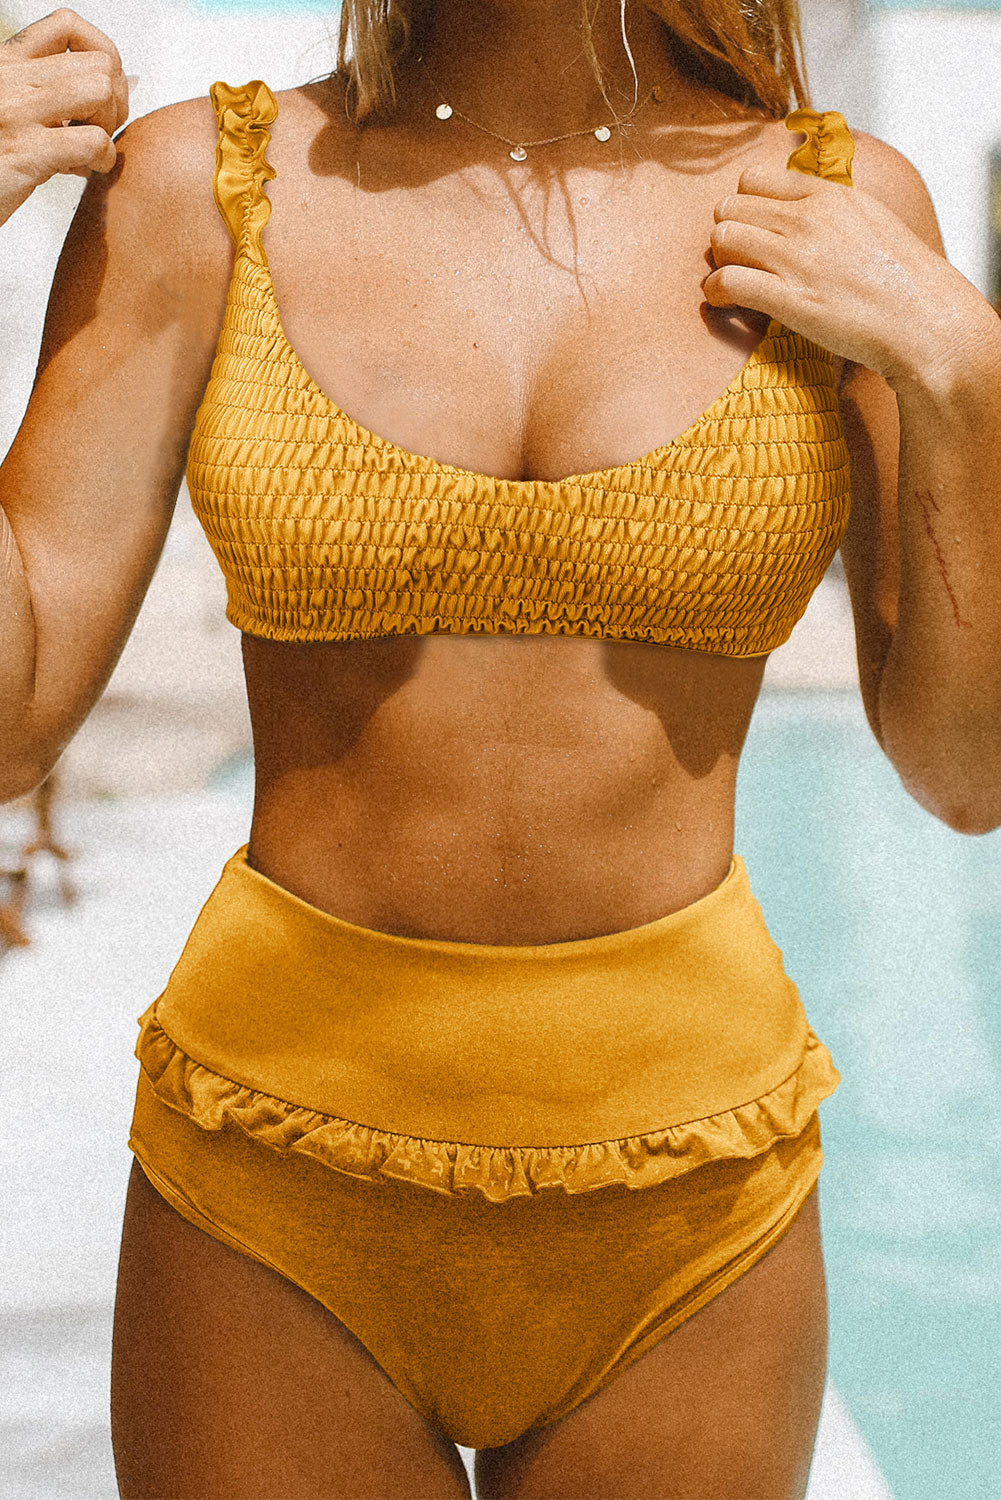 Yellow Smocked High Waist Bikini Set High Waist Swimwear Discount Designer Fashion Clothes Shoes Bags Women Men Kids Children Black Owned Business